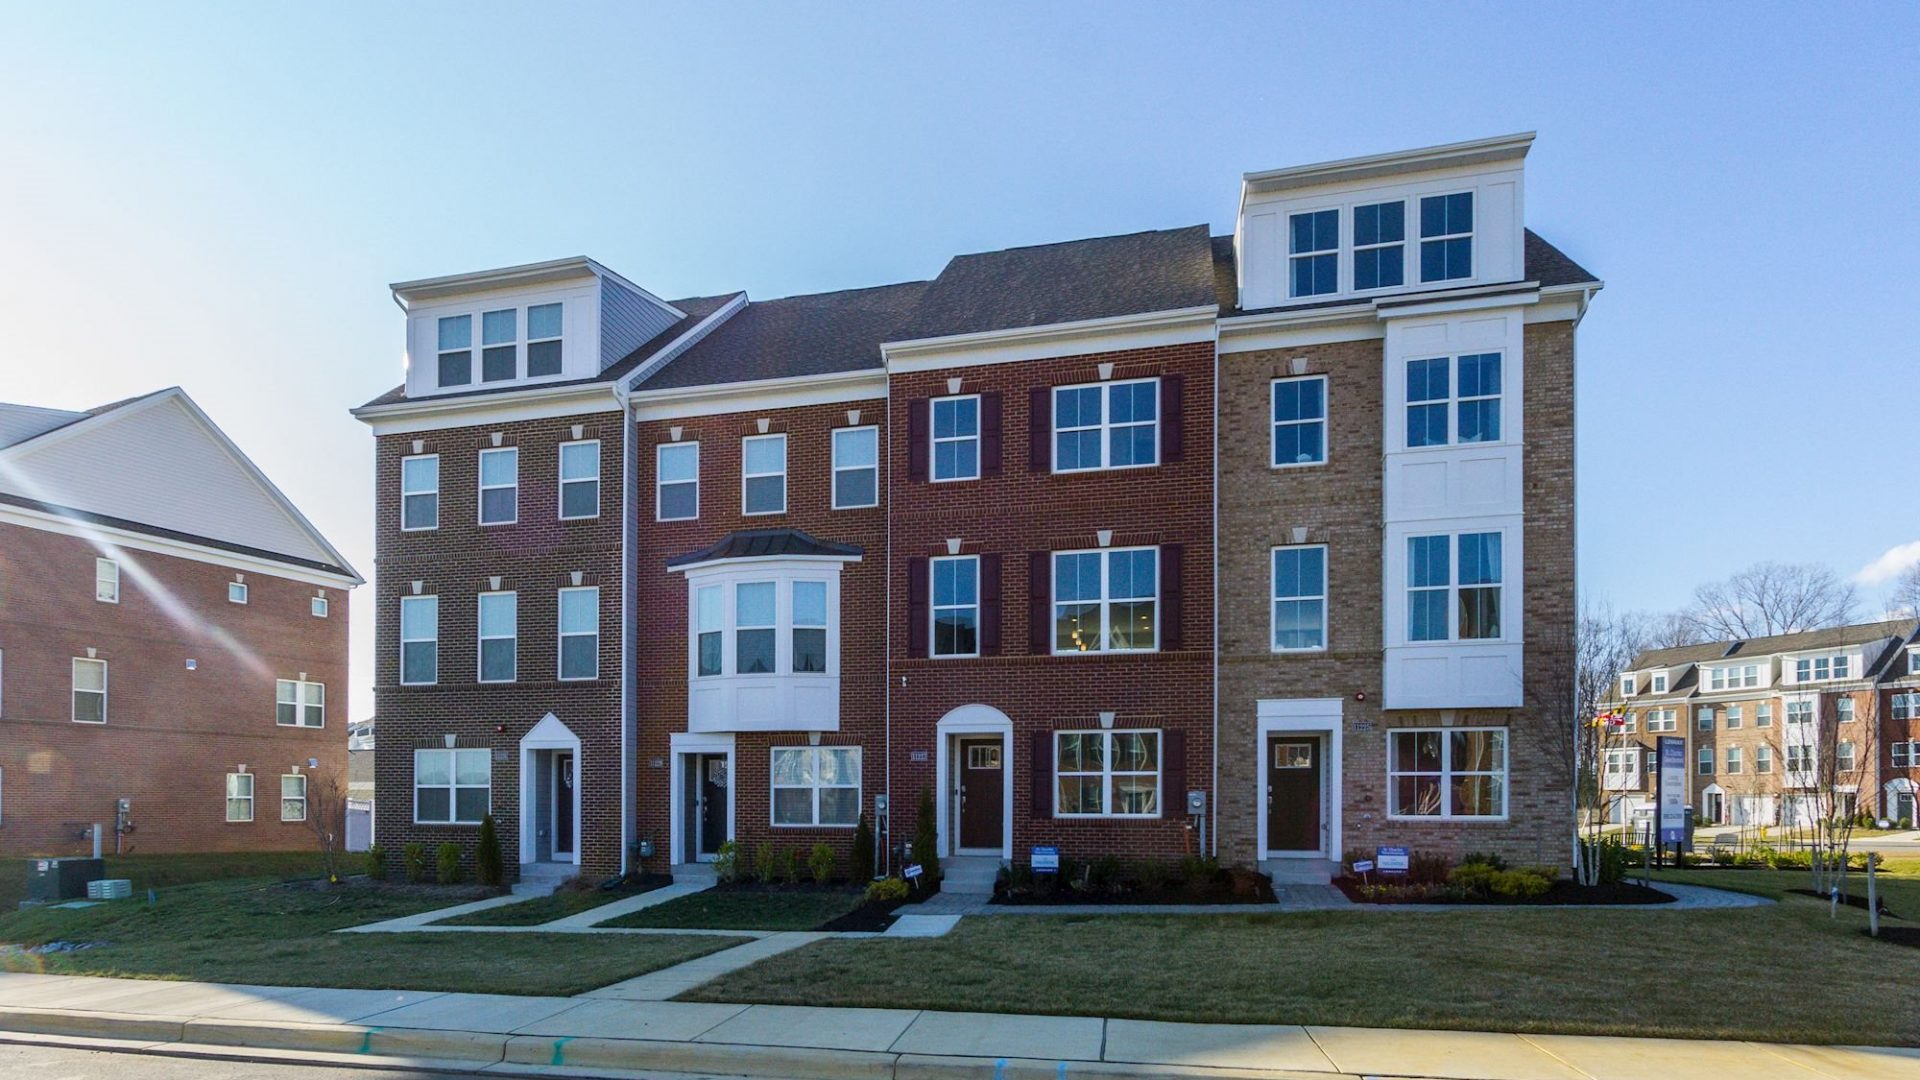 St. Charles Townhomes